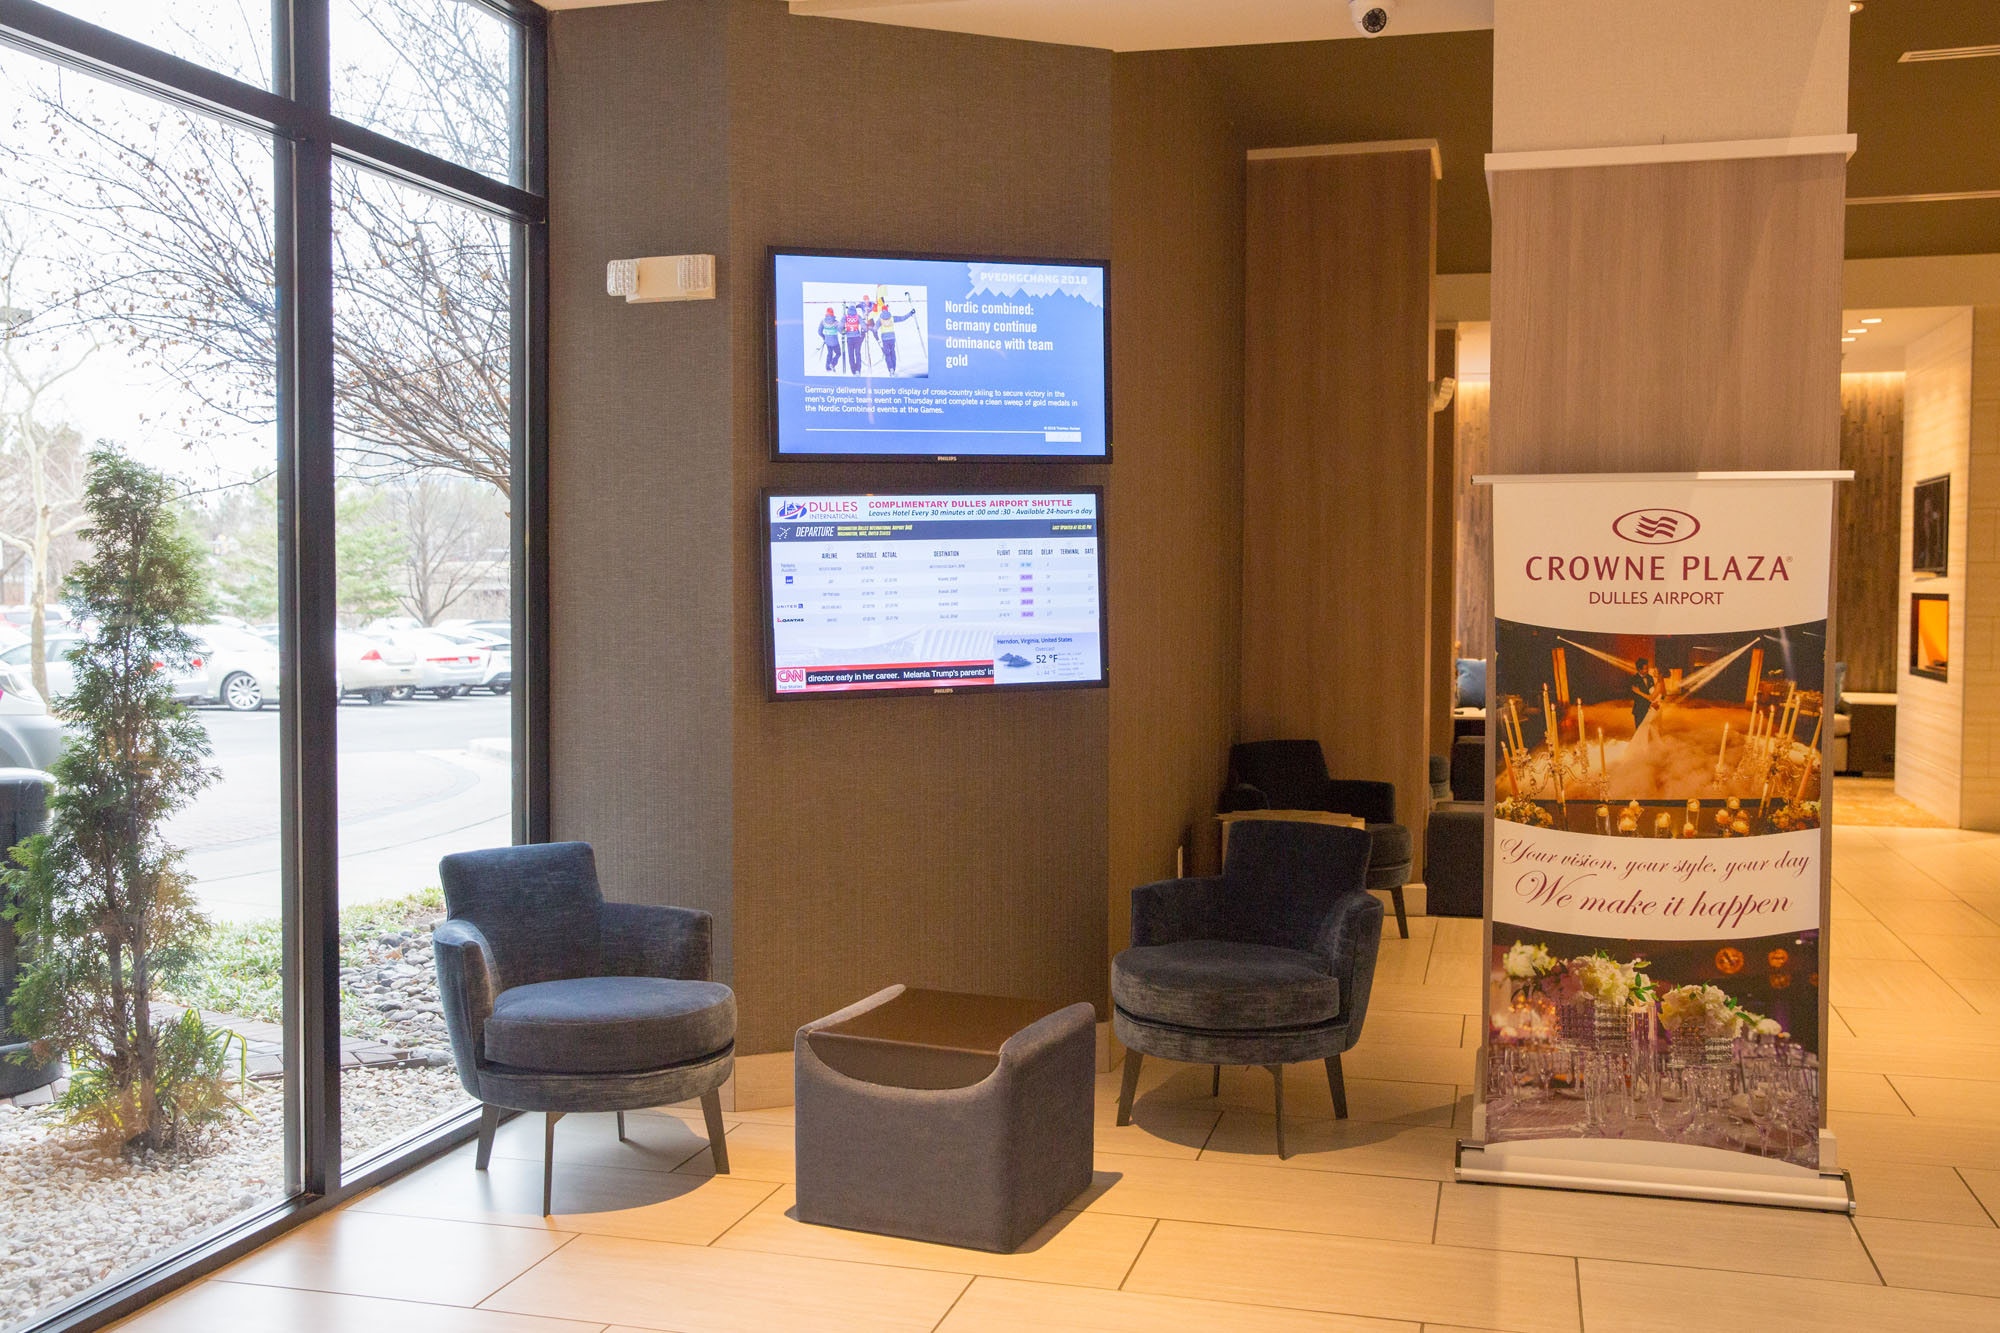 Crowne Plaza Dulles Conference Spaces Get a Digital Signage